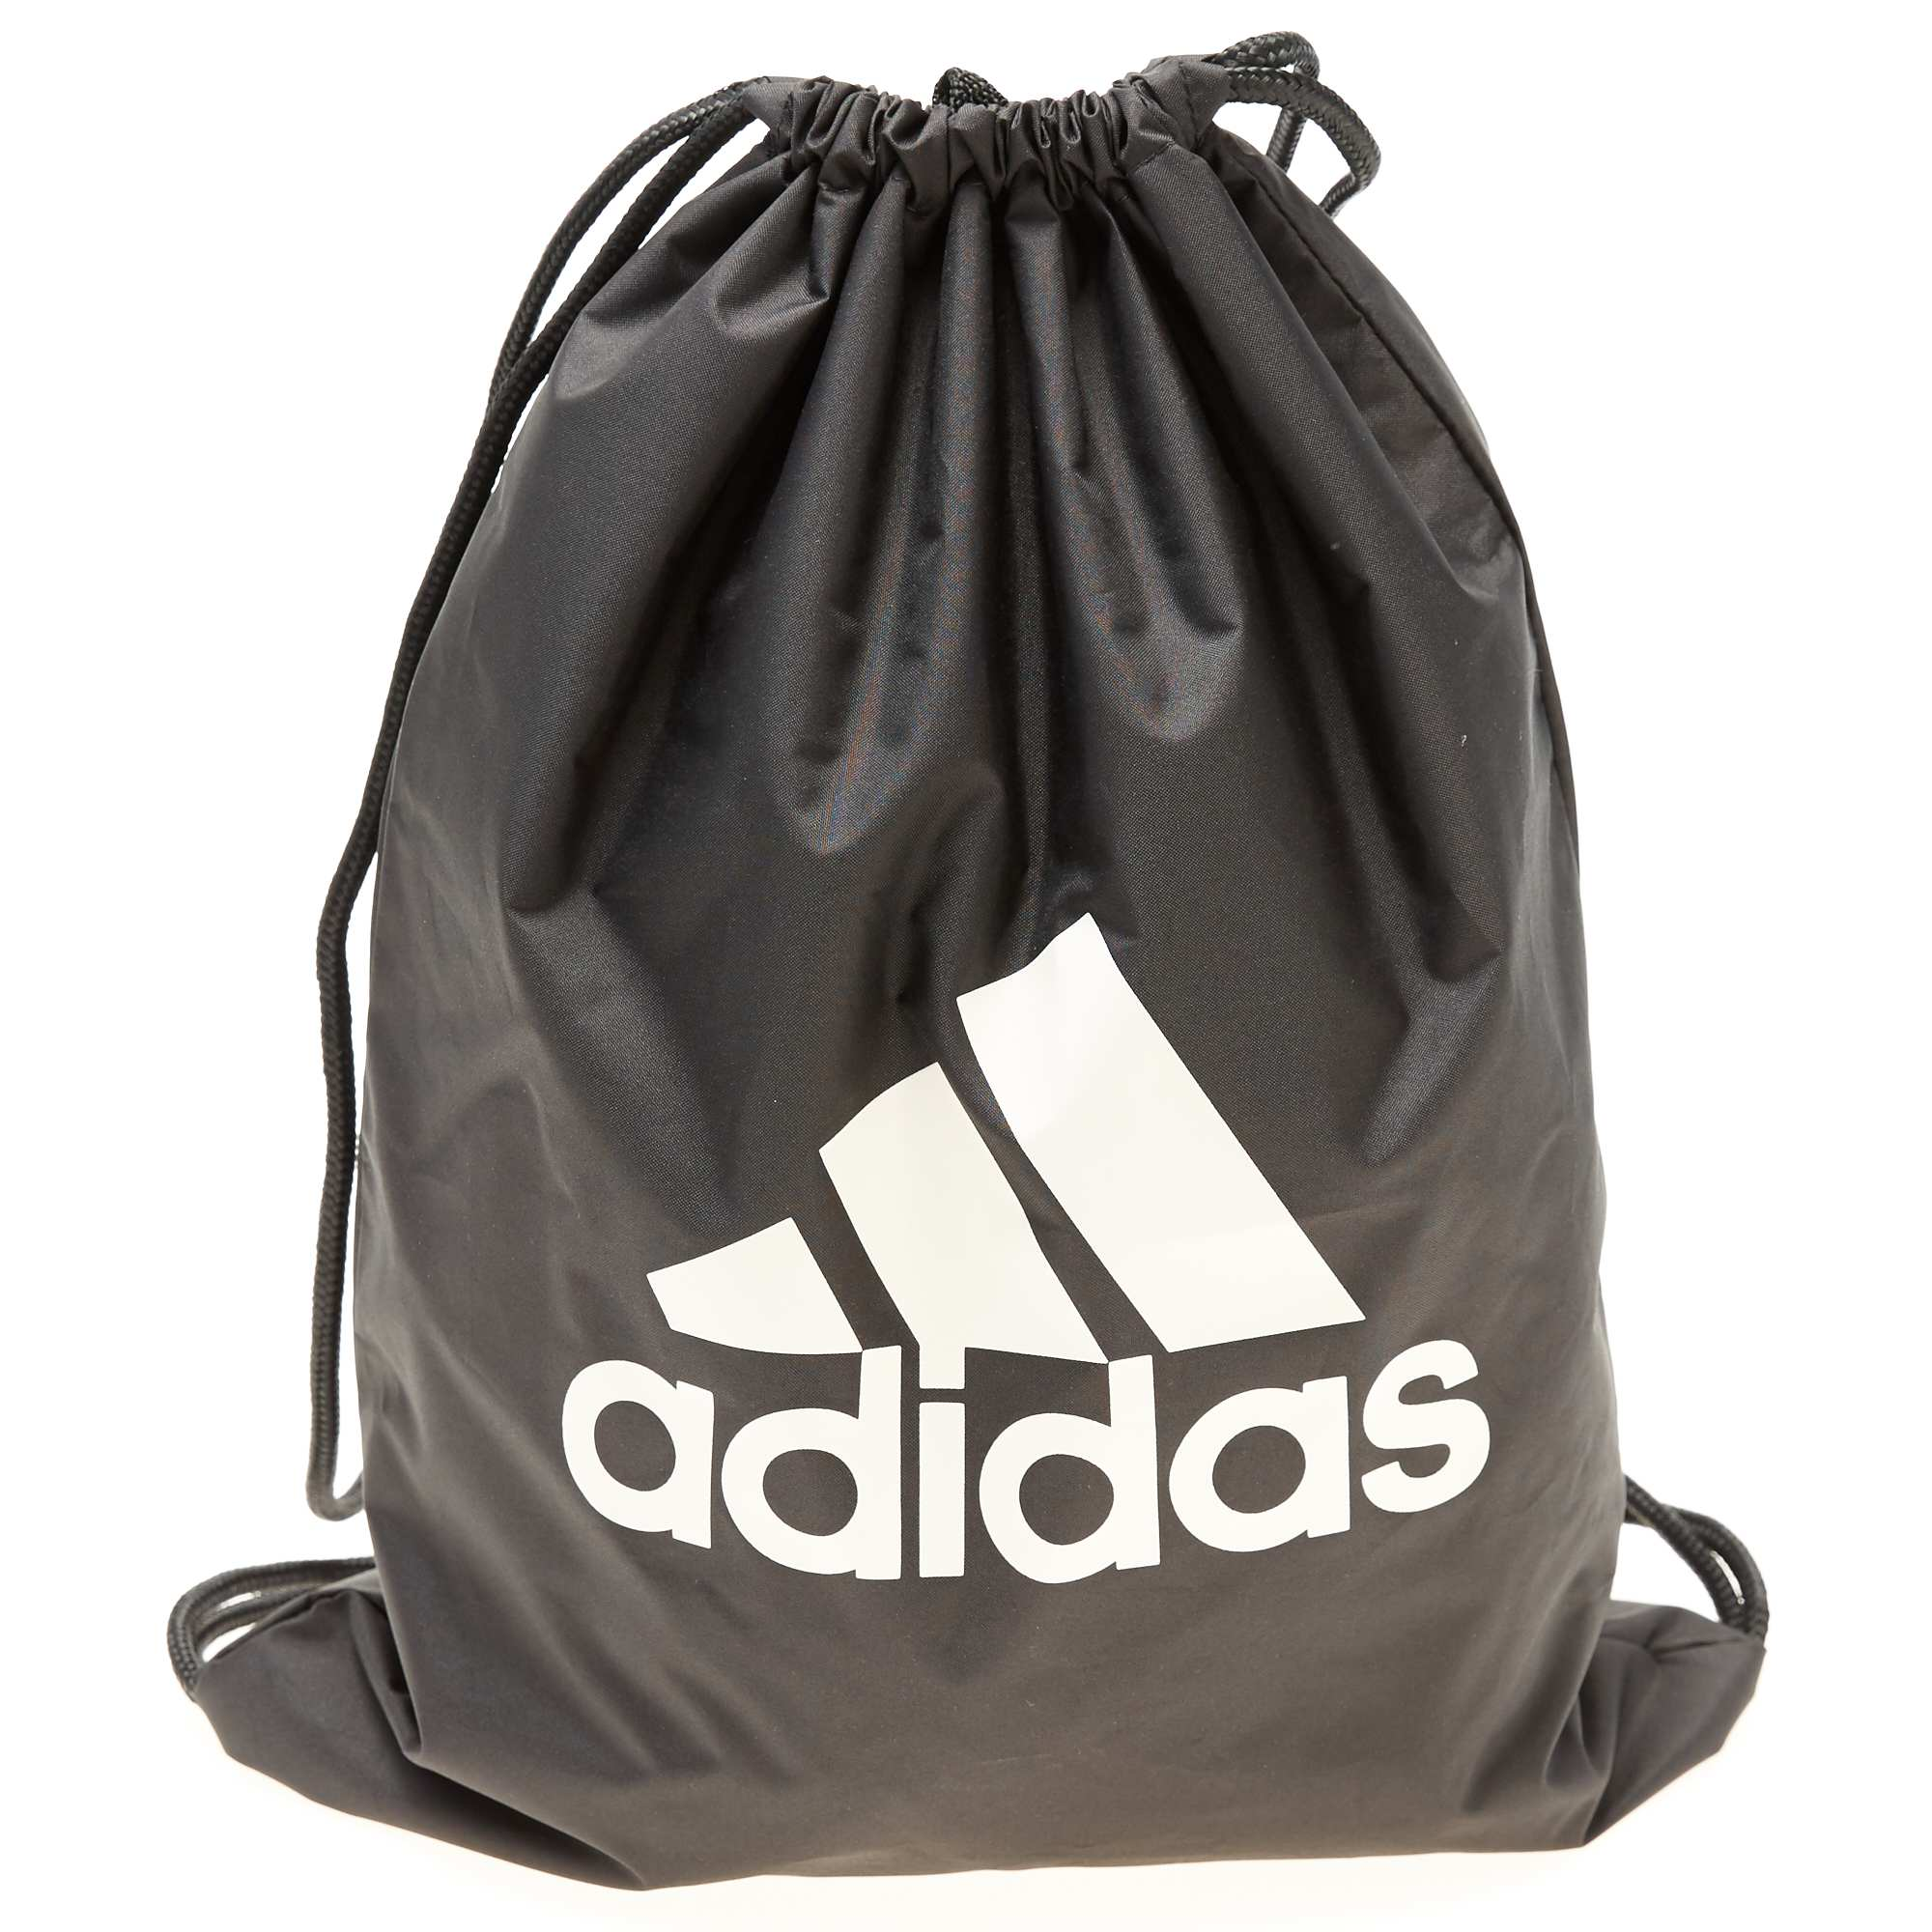 sac dos souffle 39 adidas 39 gar on adolescent noir kiabi 10 00. Black Bedroom Furniture Sets. Home Design Ideas